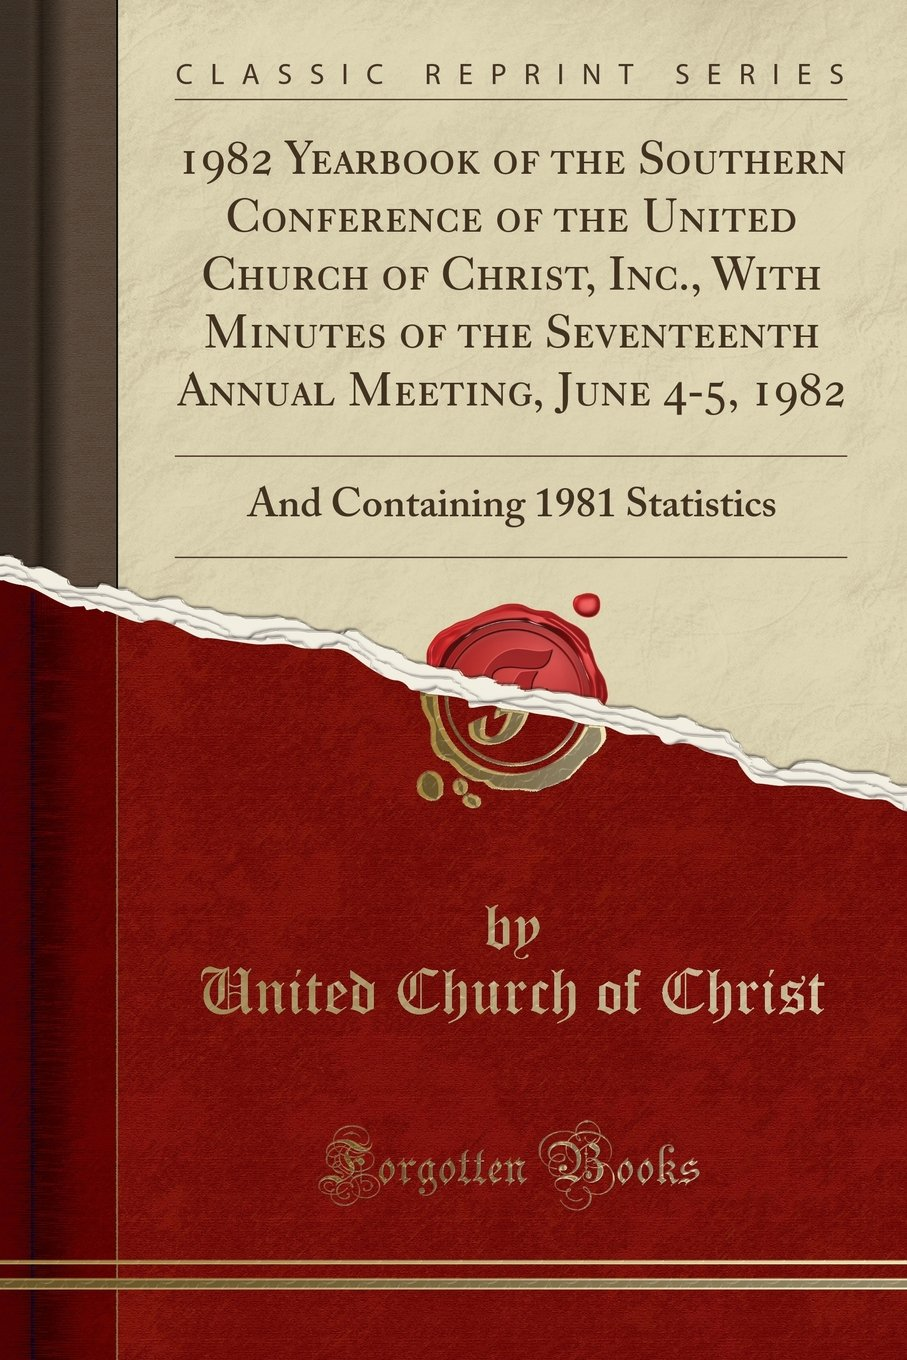 1982 Yearbook of the Southern Conference of the United Church of Christ, Inc., with Minutes of the Seventeenth Annual Meeting, June 4-5, 1982: And Containing 1981 Statistics (Classic Reprint) pdf